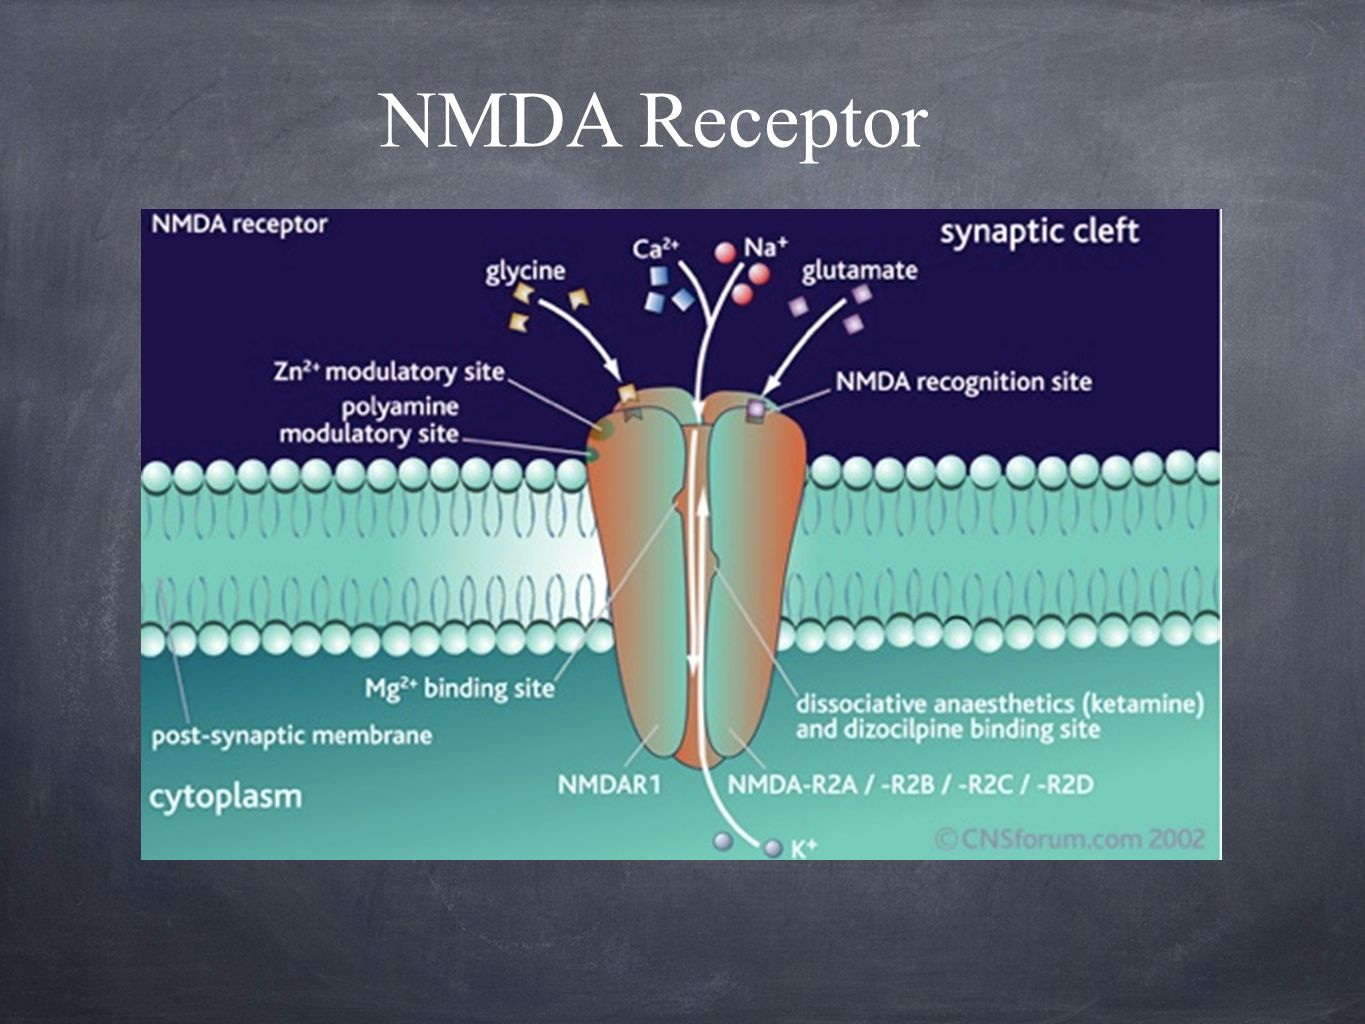 Analgesia effects: Preventing central sensitization in the dorsal horn neurons (interfere with pain transmission in spinal cord) Inhibits nitric oxide synthase S(+) enantiomer shown to have opioid mu receptor activity Analgesia occurs at lower blood levels than loss of consciousness (subanesthetic doses produce analgesia) Ketamine